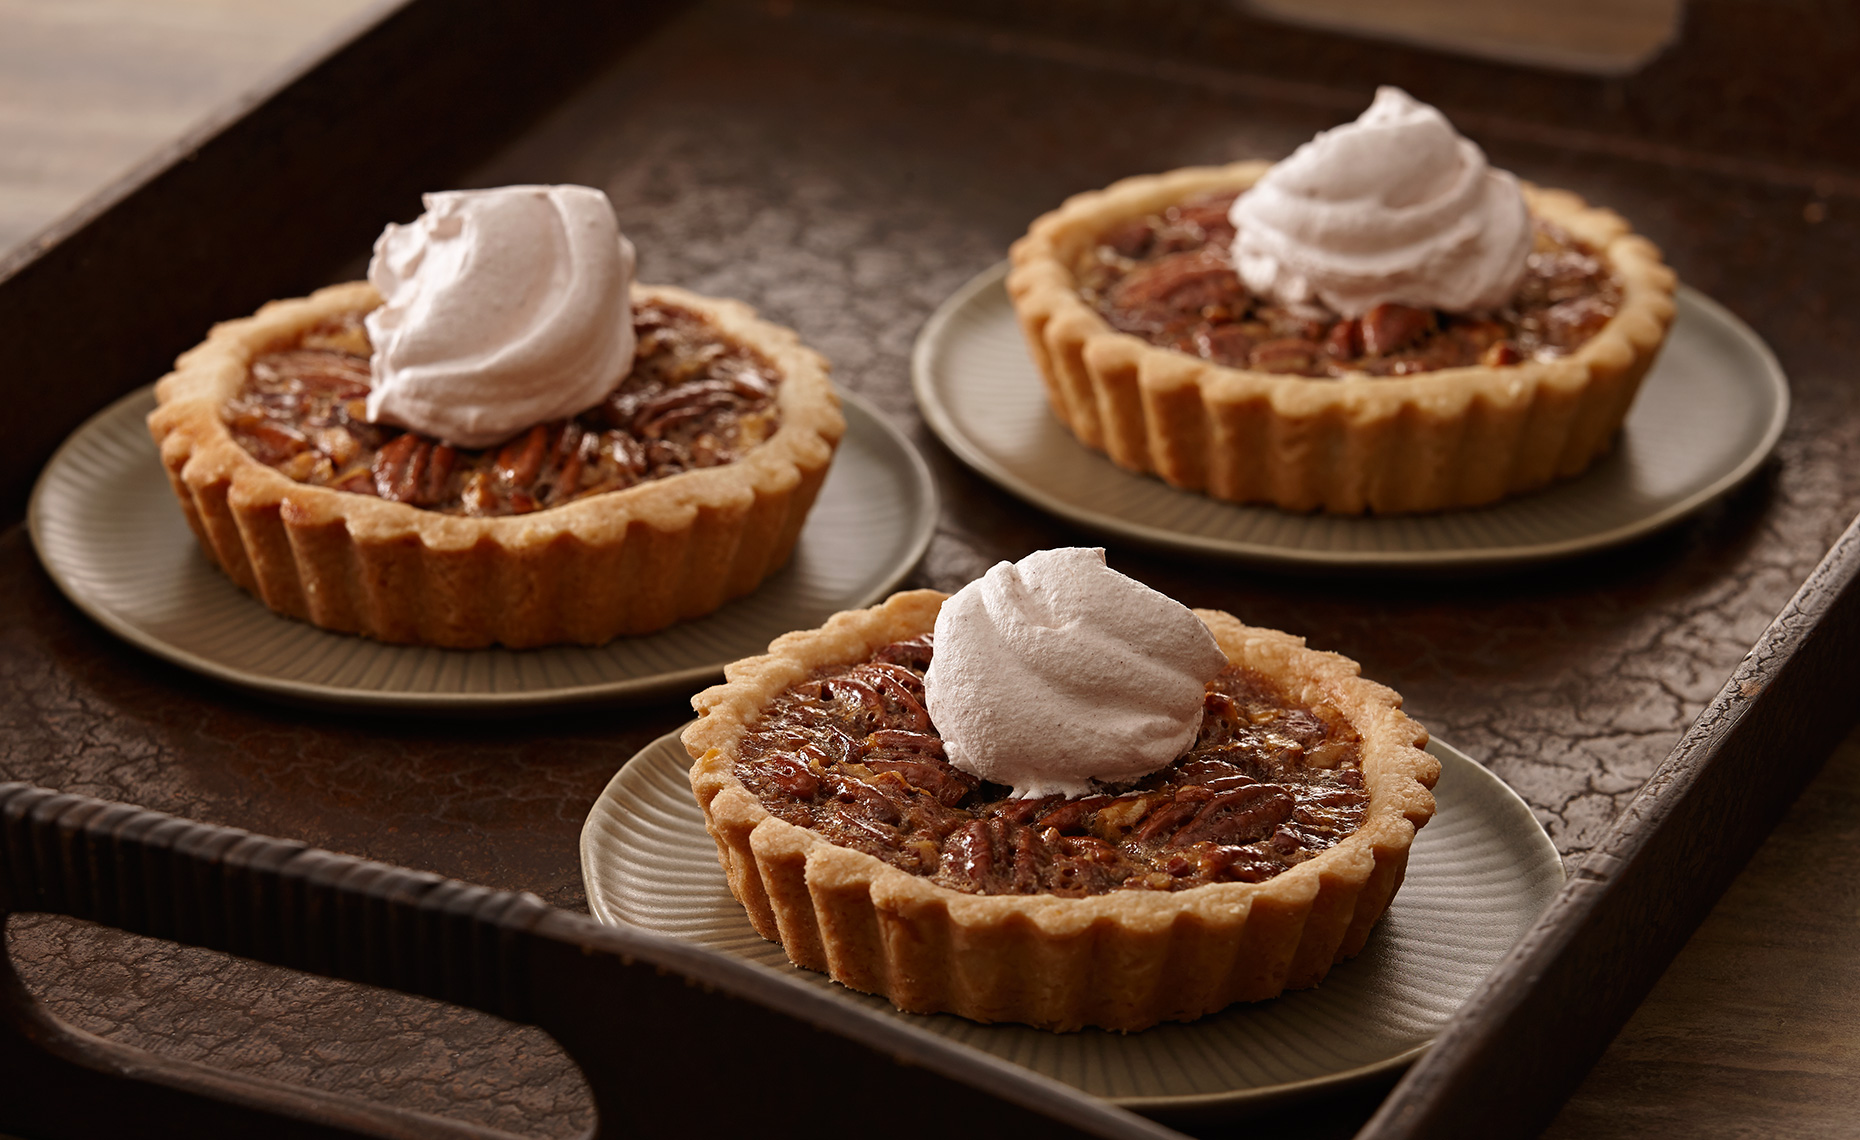 Food Photographer, Cake Photography, Ice Cream Photography, Dessert Photography | Pohuski Studios,  Pecan Pie Tarts